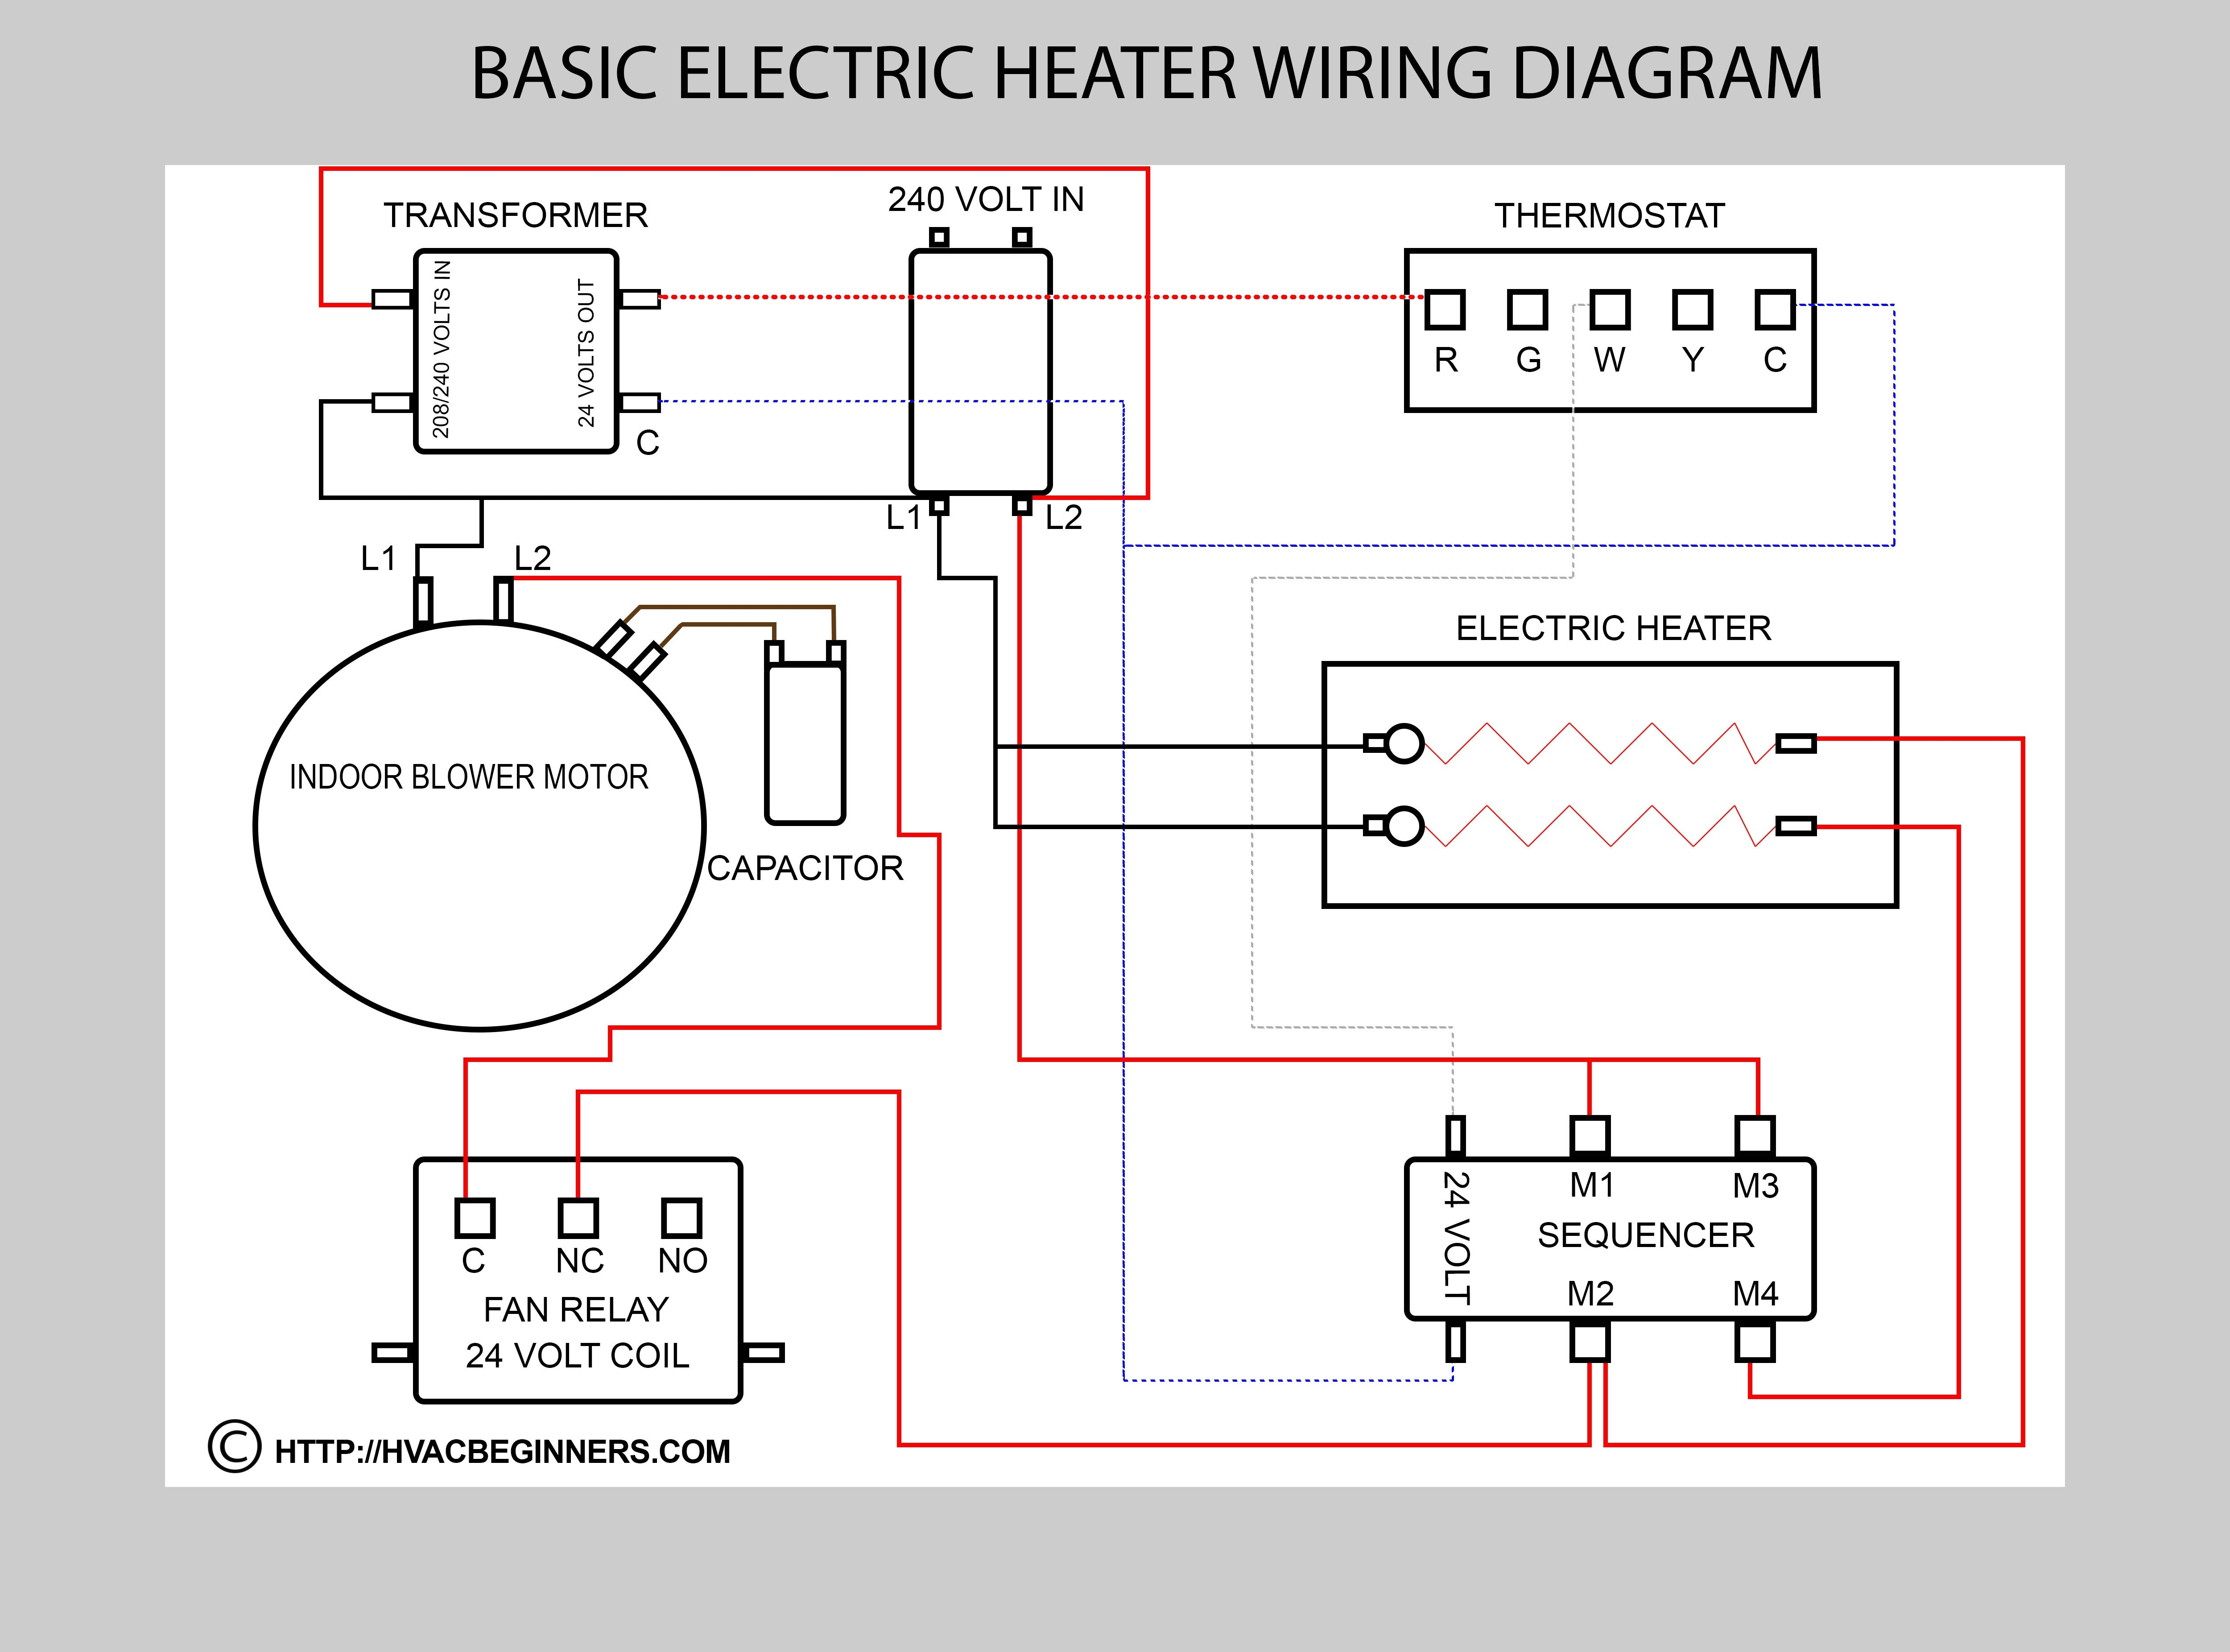 split air conditioning wiring diagram Collection-Electrical Wiring Diagram for Split Ac New Split System Air Conditioner Wiring Diagram Hvac Wire Central 5-n